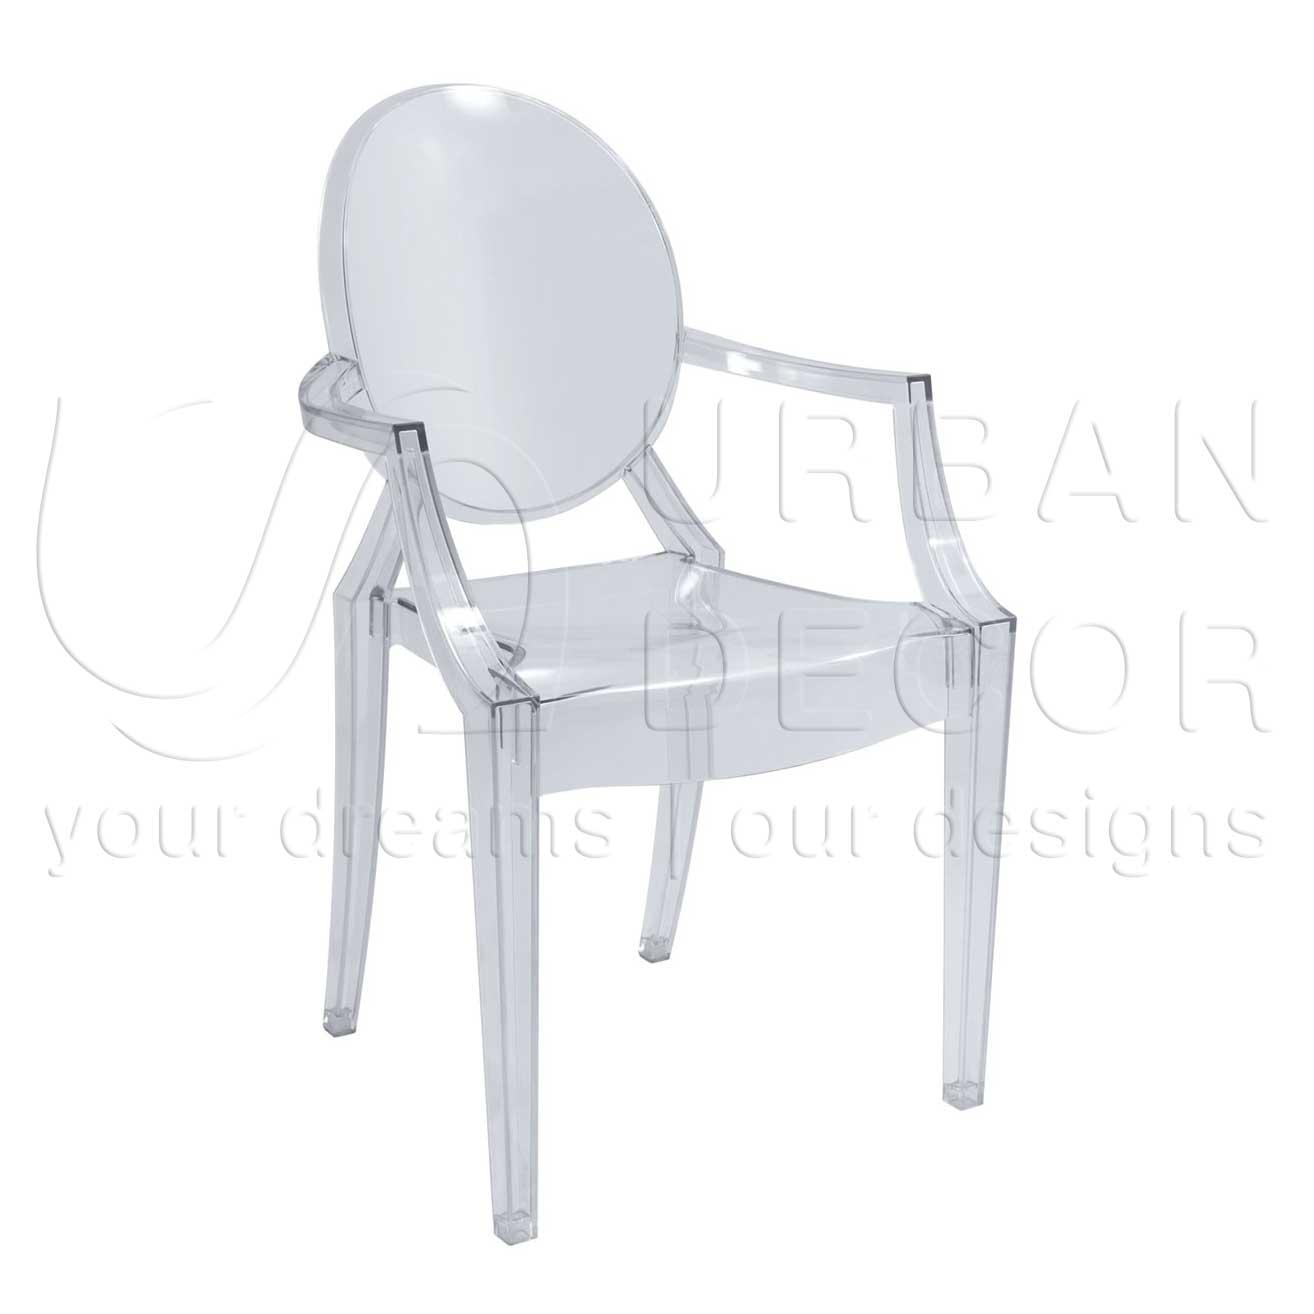 Cafeteria Chairs: Ghost Clear Polycarbonate Chair